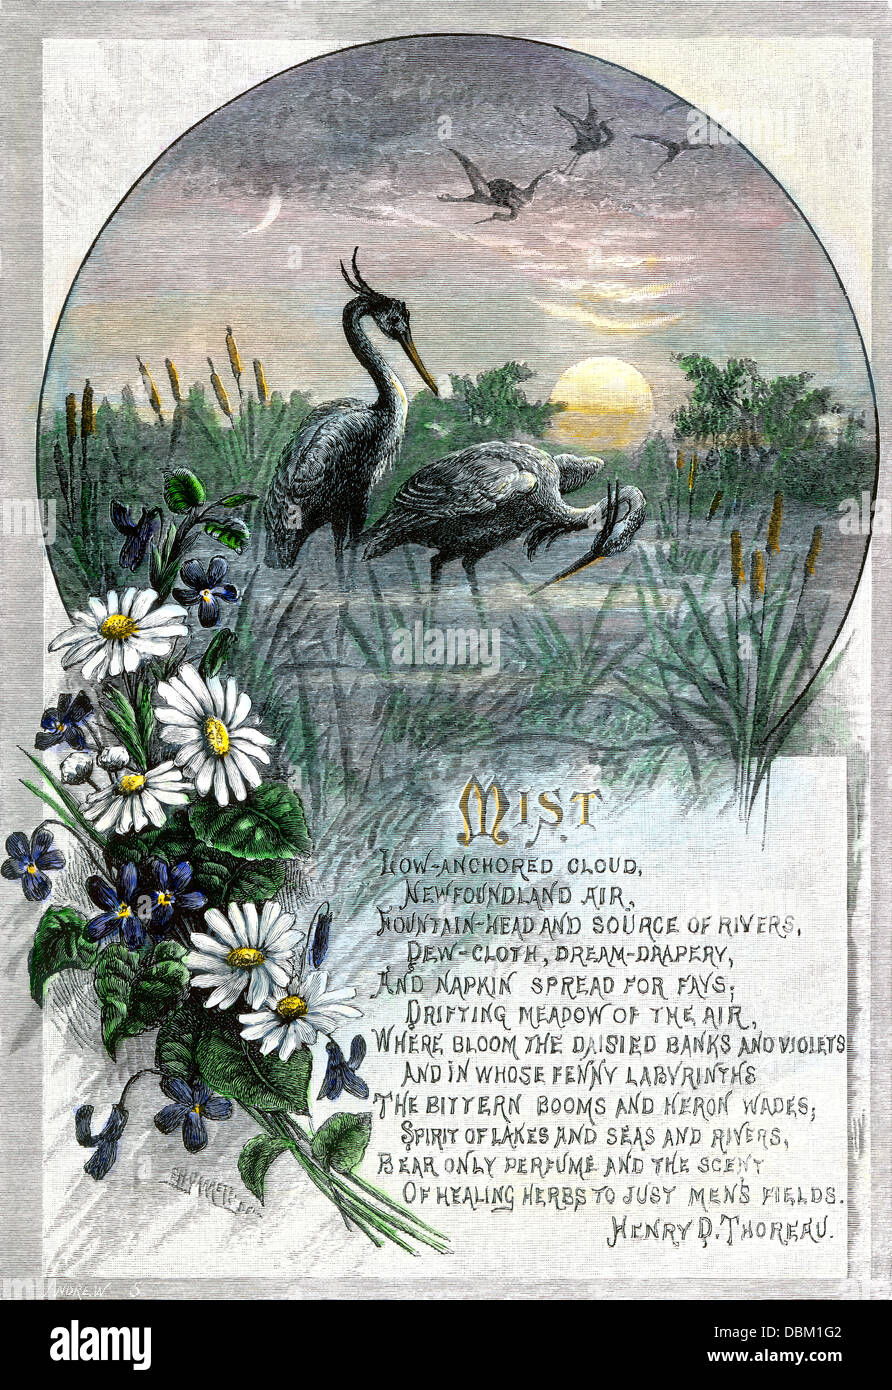 'Mist,' a poem by Henry David Thoreau. Hand-colored woodcut - Stock Image